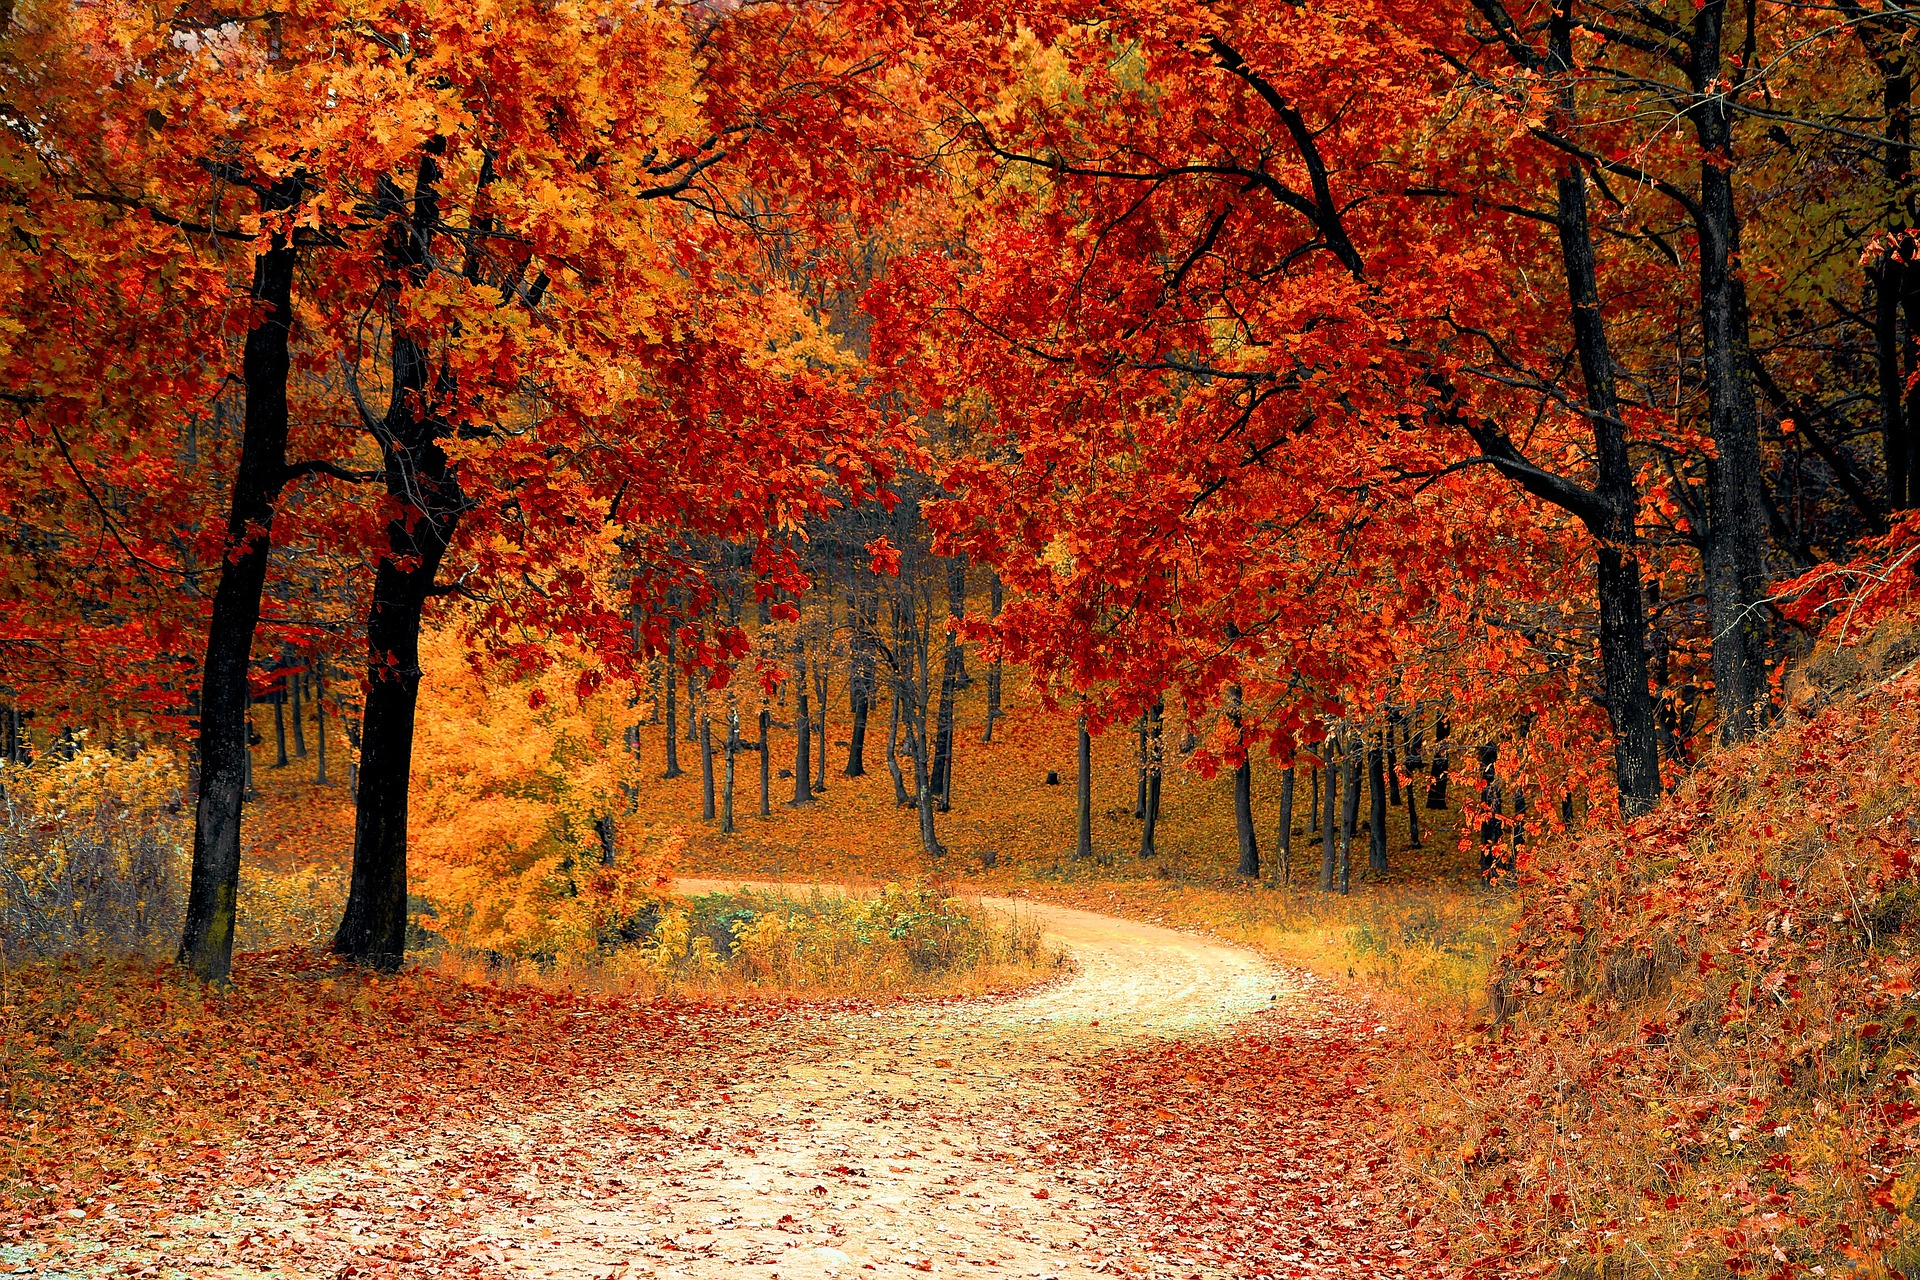 Winding road with fall trees